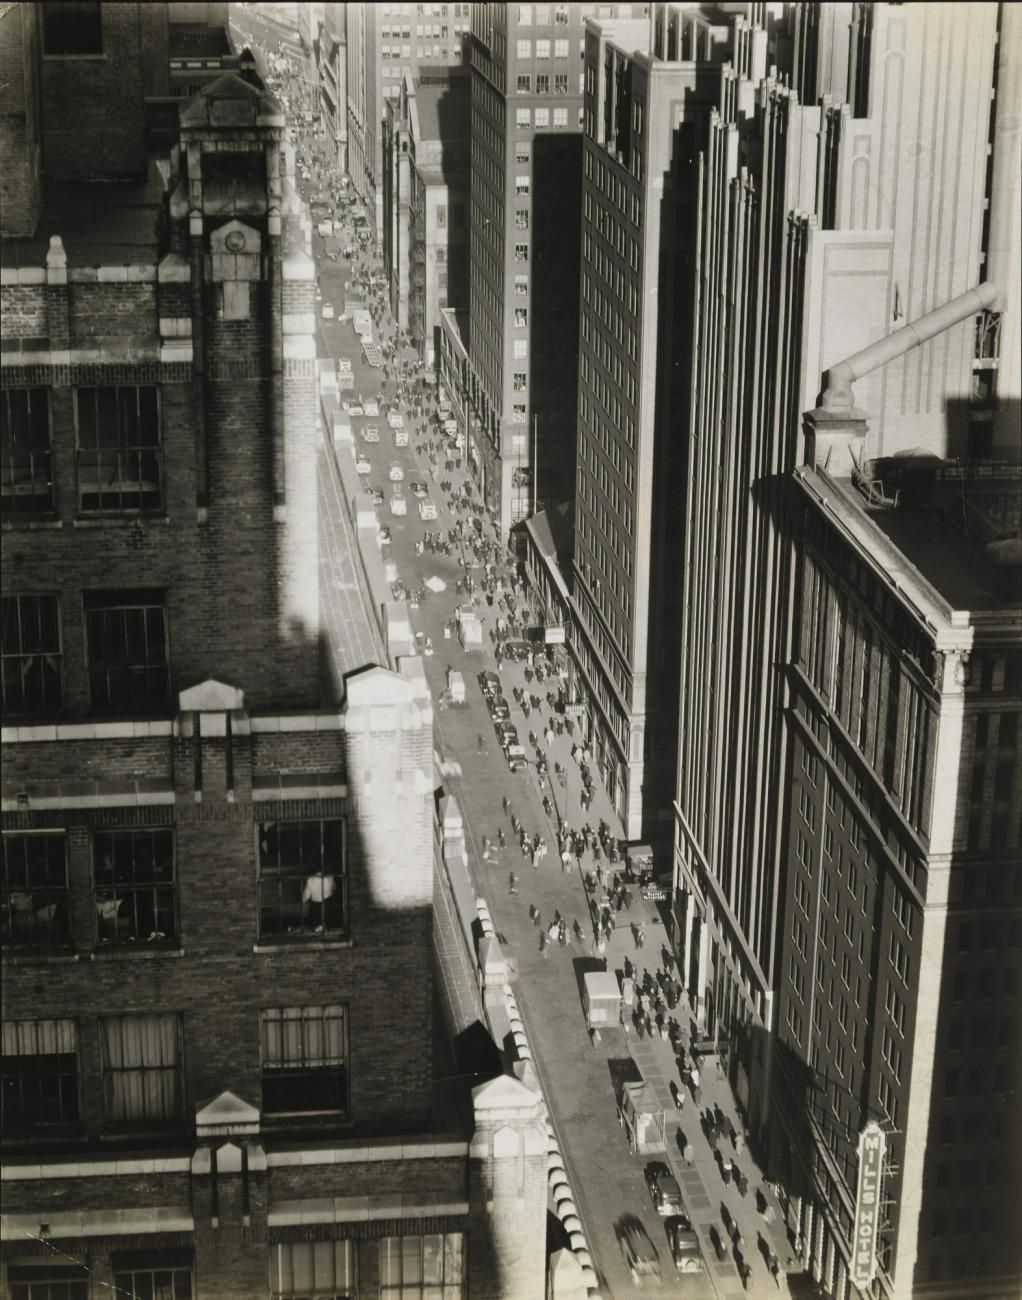 A black and white photograph looking down on a street in Manhattan